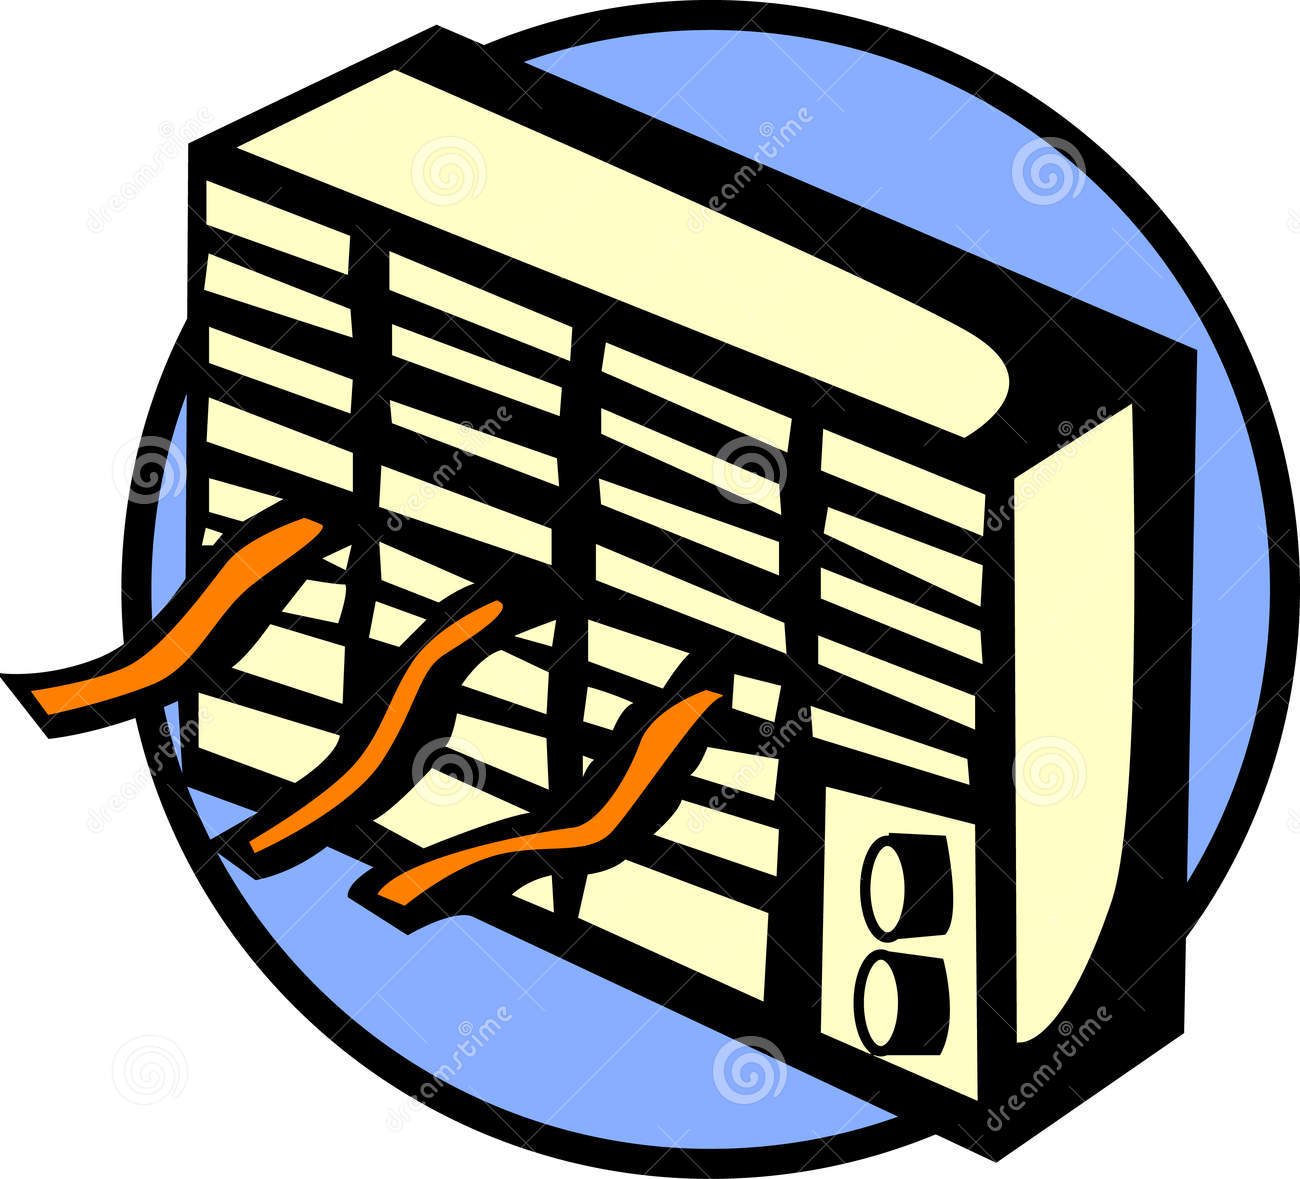 Clipart air conditioner.